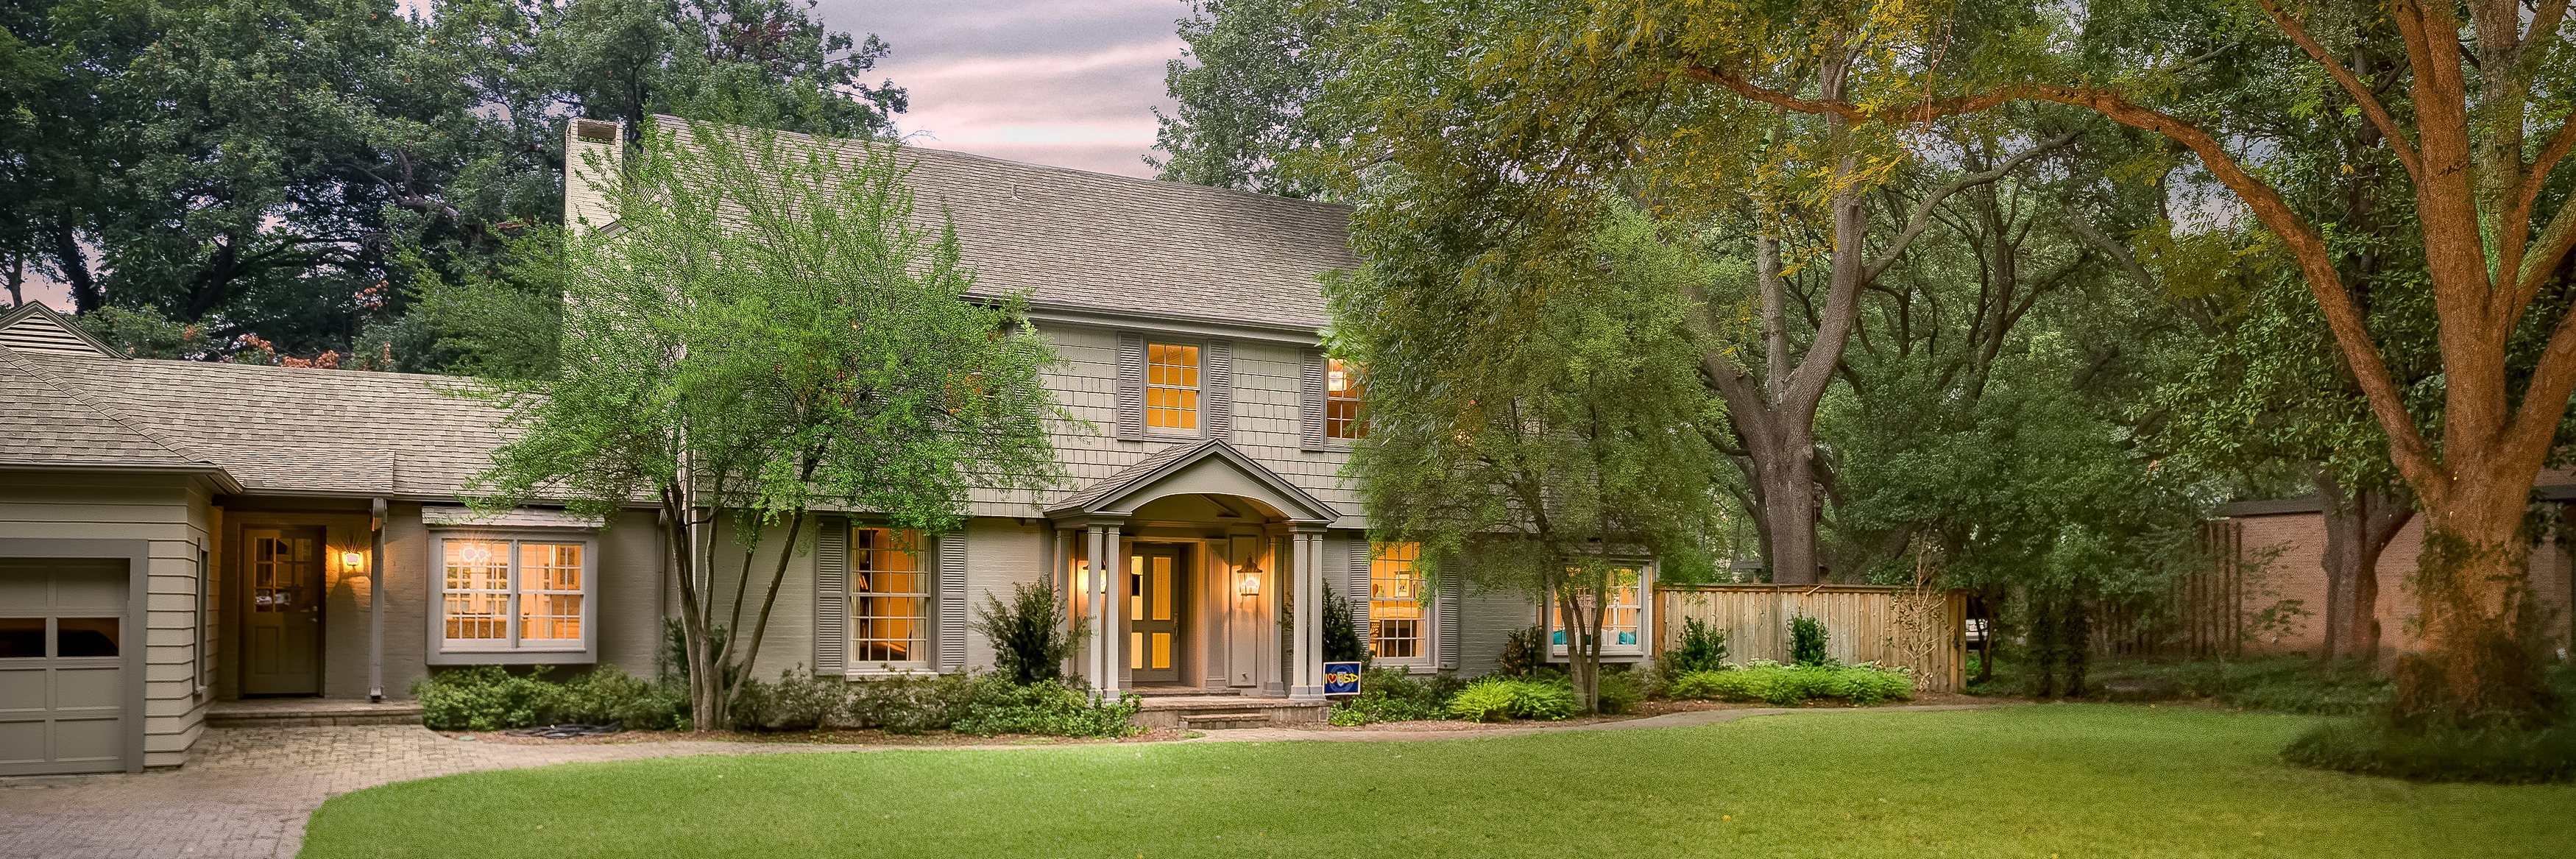 Award winning real estate photography of leading homes.